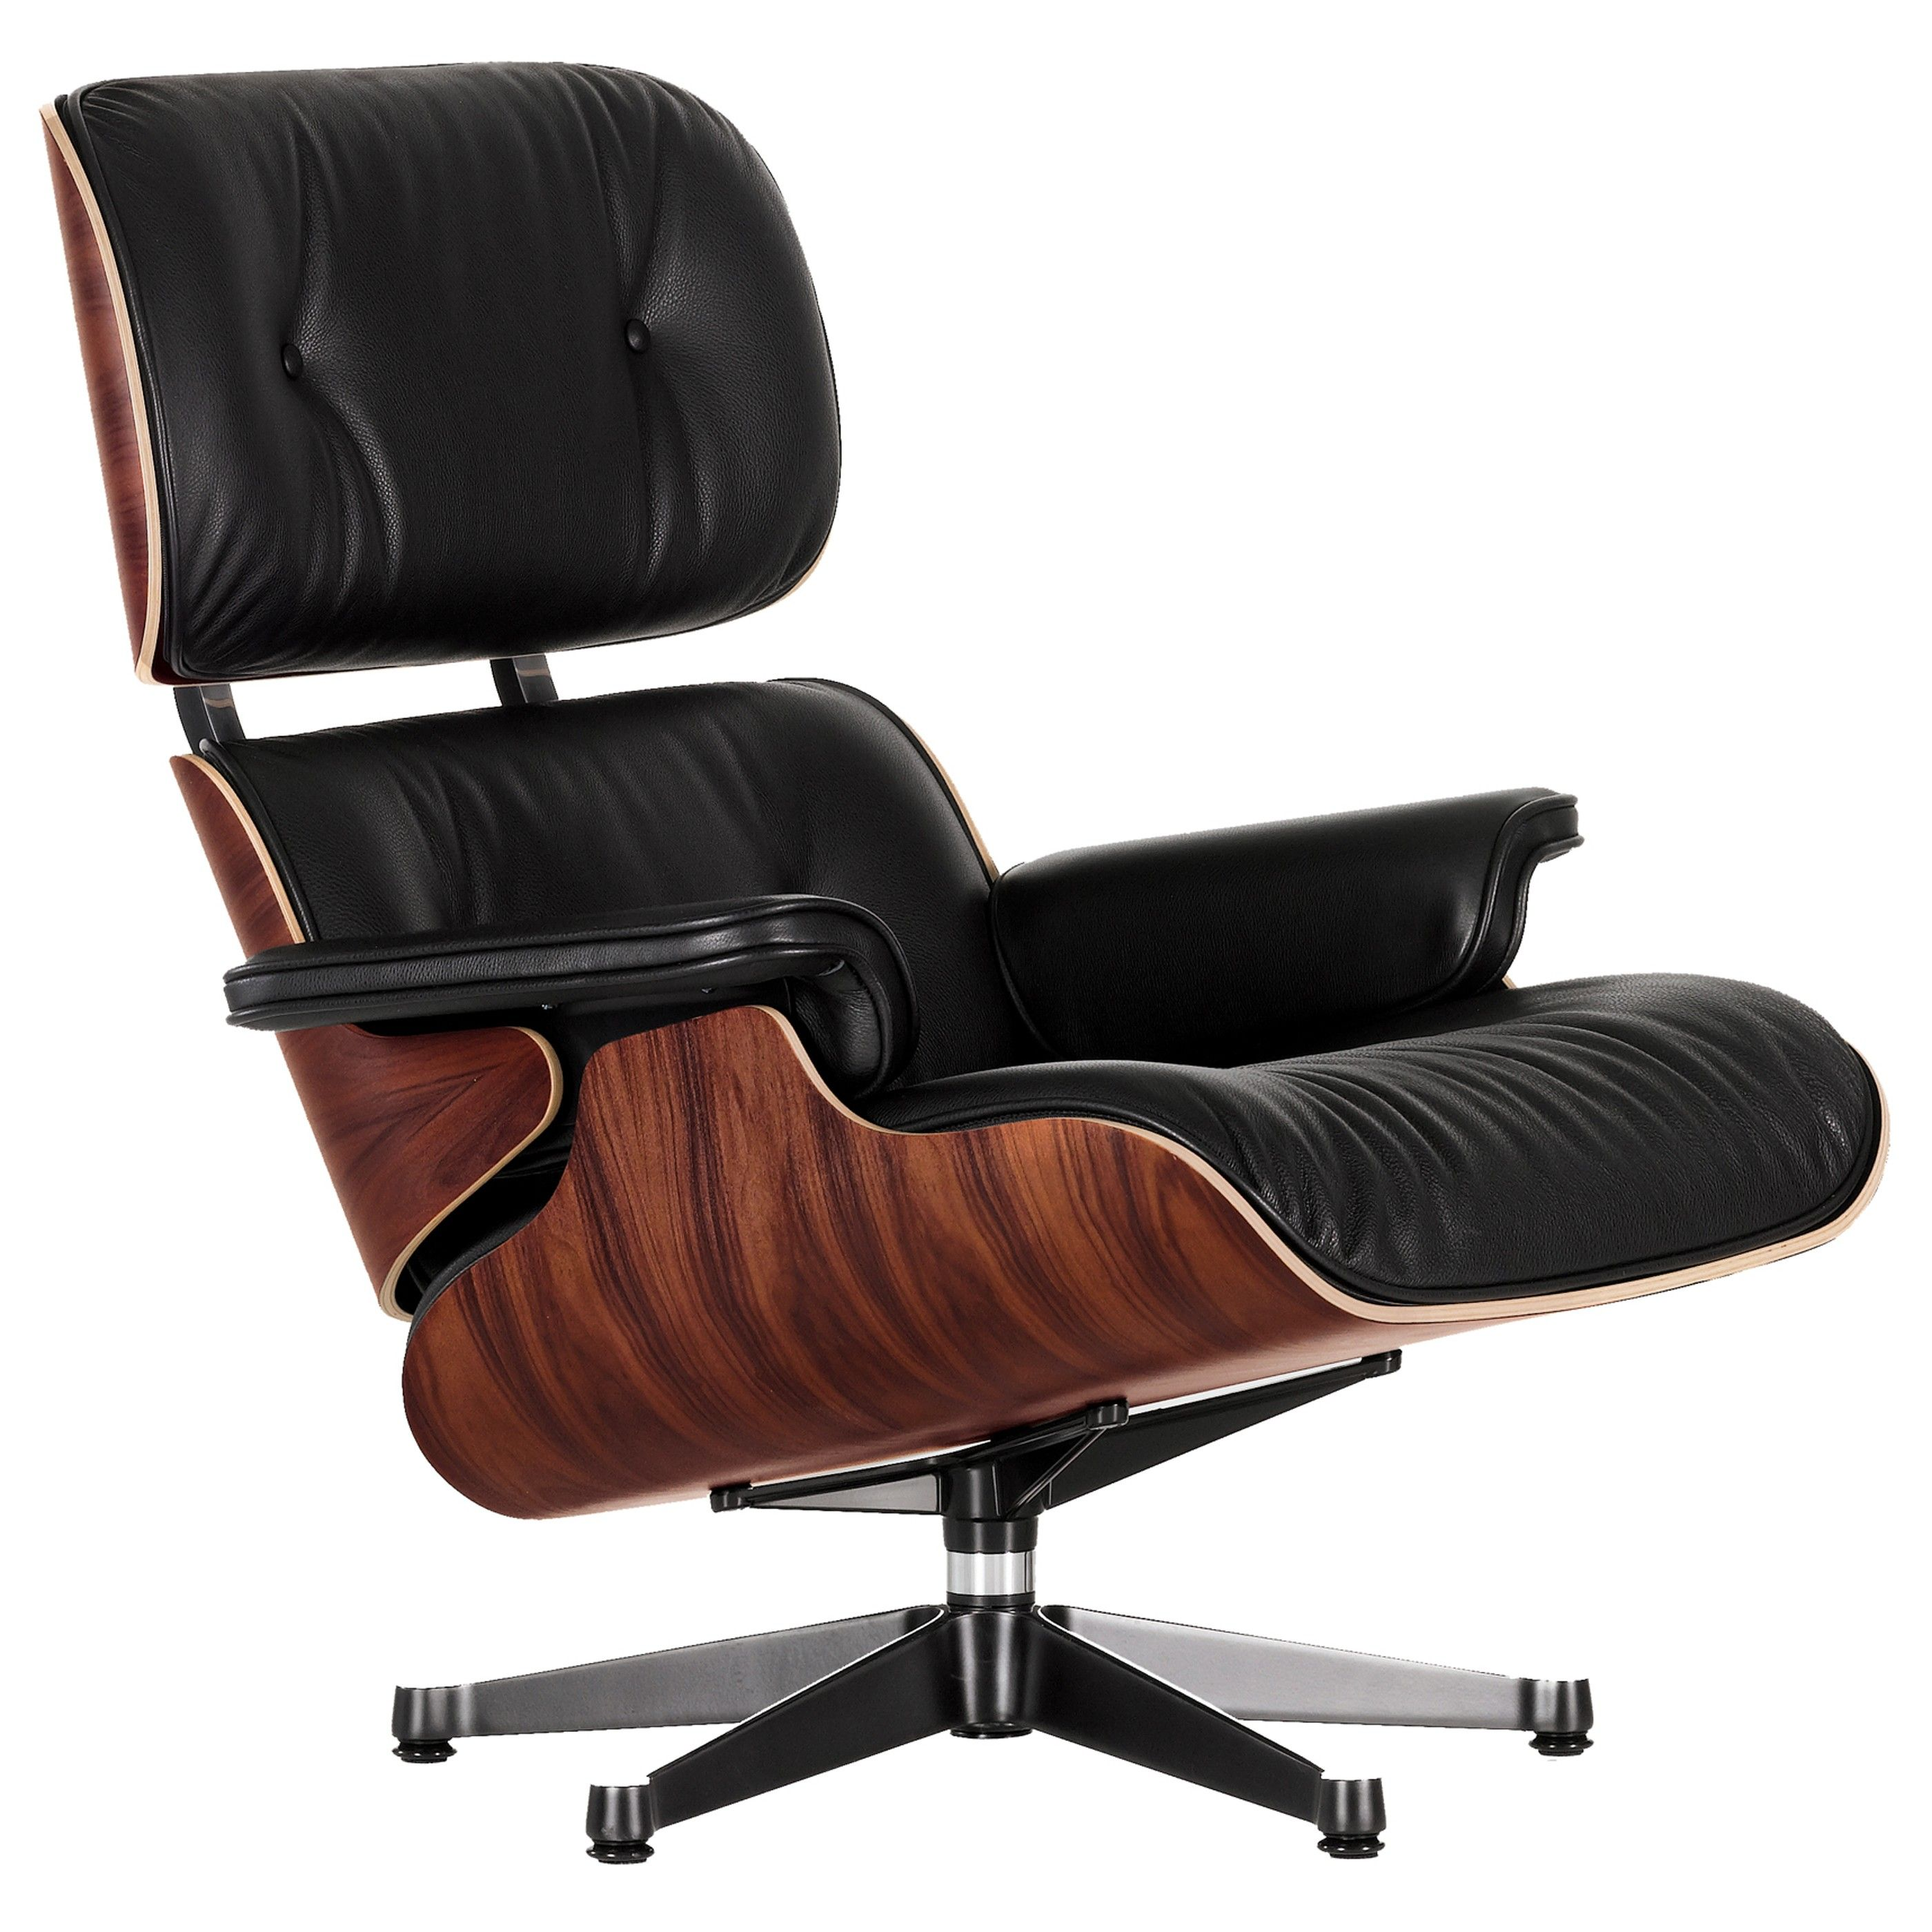 vitra lounge chair design house stockholm wicker eames fauteuil santos palisander